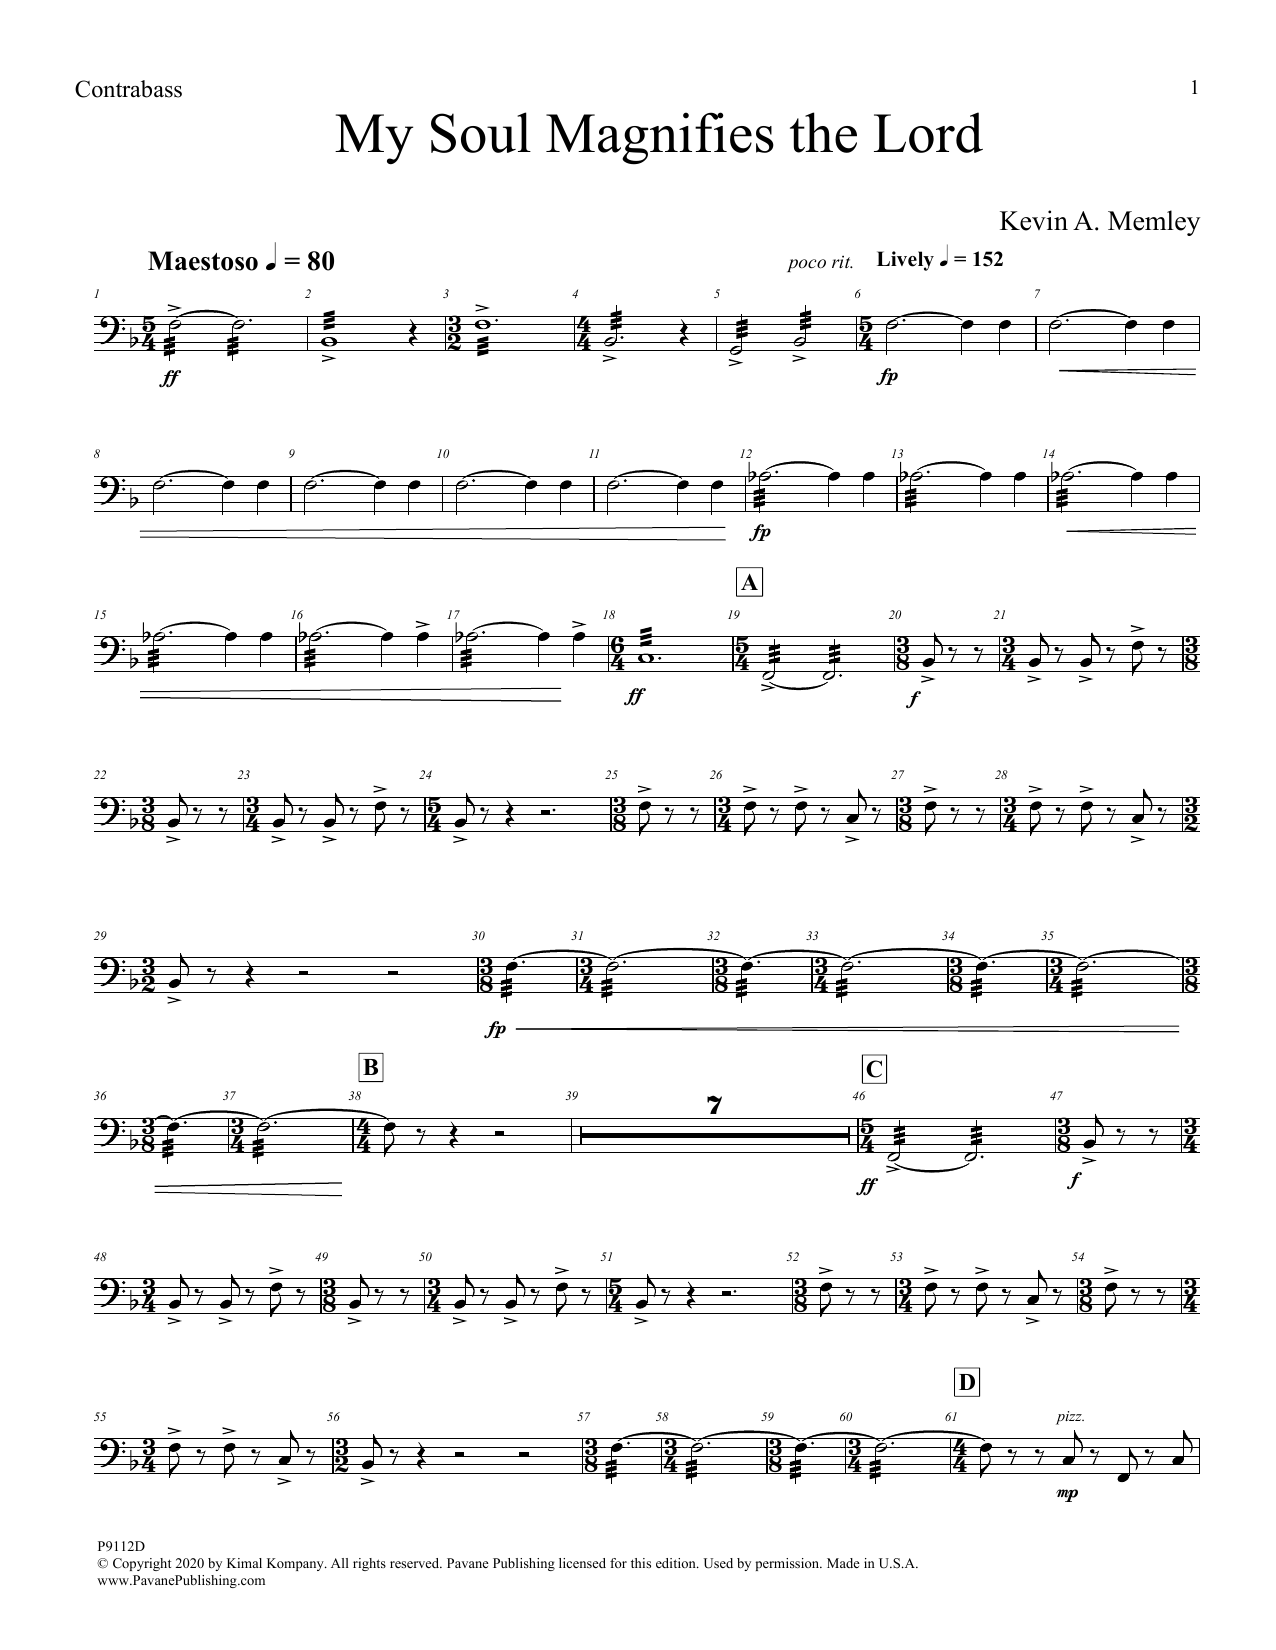 My Soul Magnifies the Lord (Full Orchestra) - Acoustic Bass Sheet Music